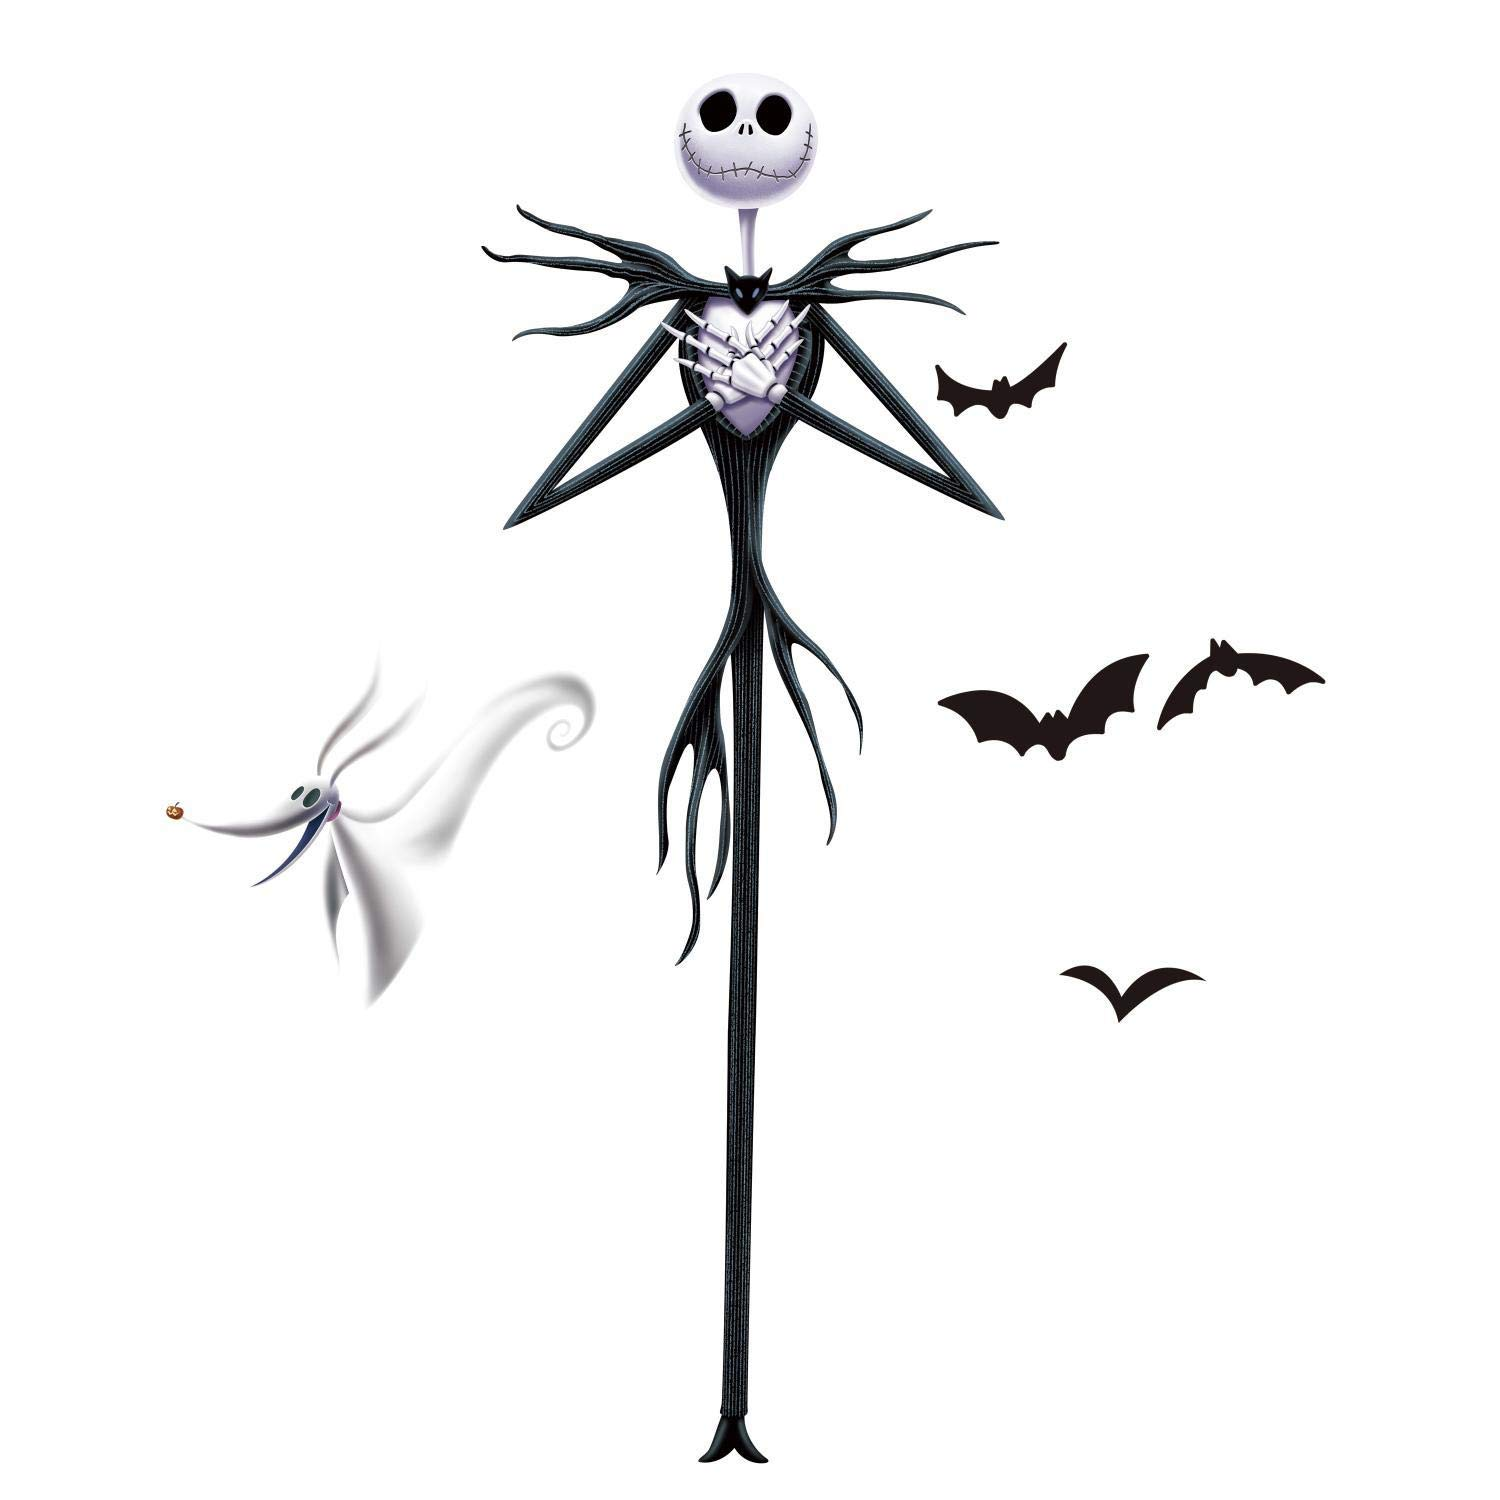 RoomMates The Nightmare Before Christmas Jack Peel And Stick Giant Wall Decals by RoomMates